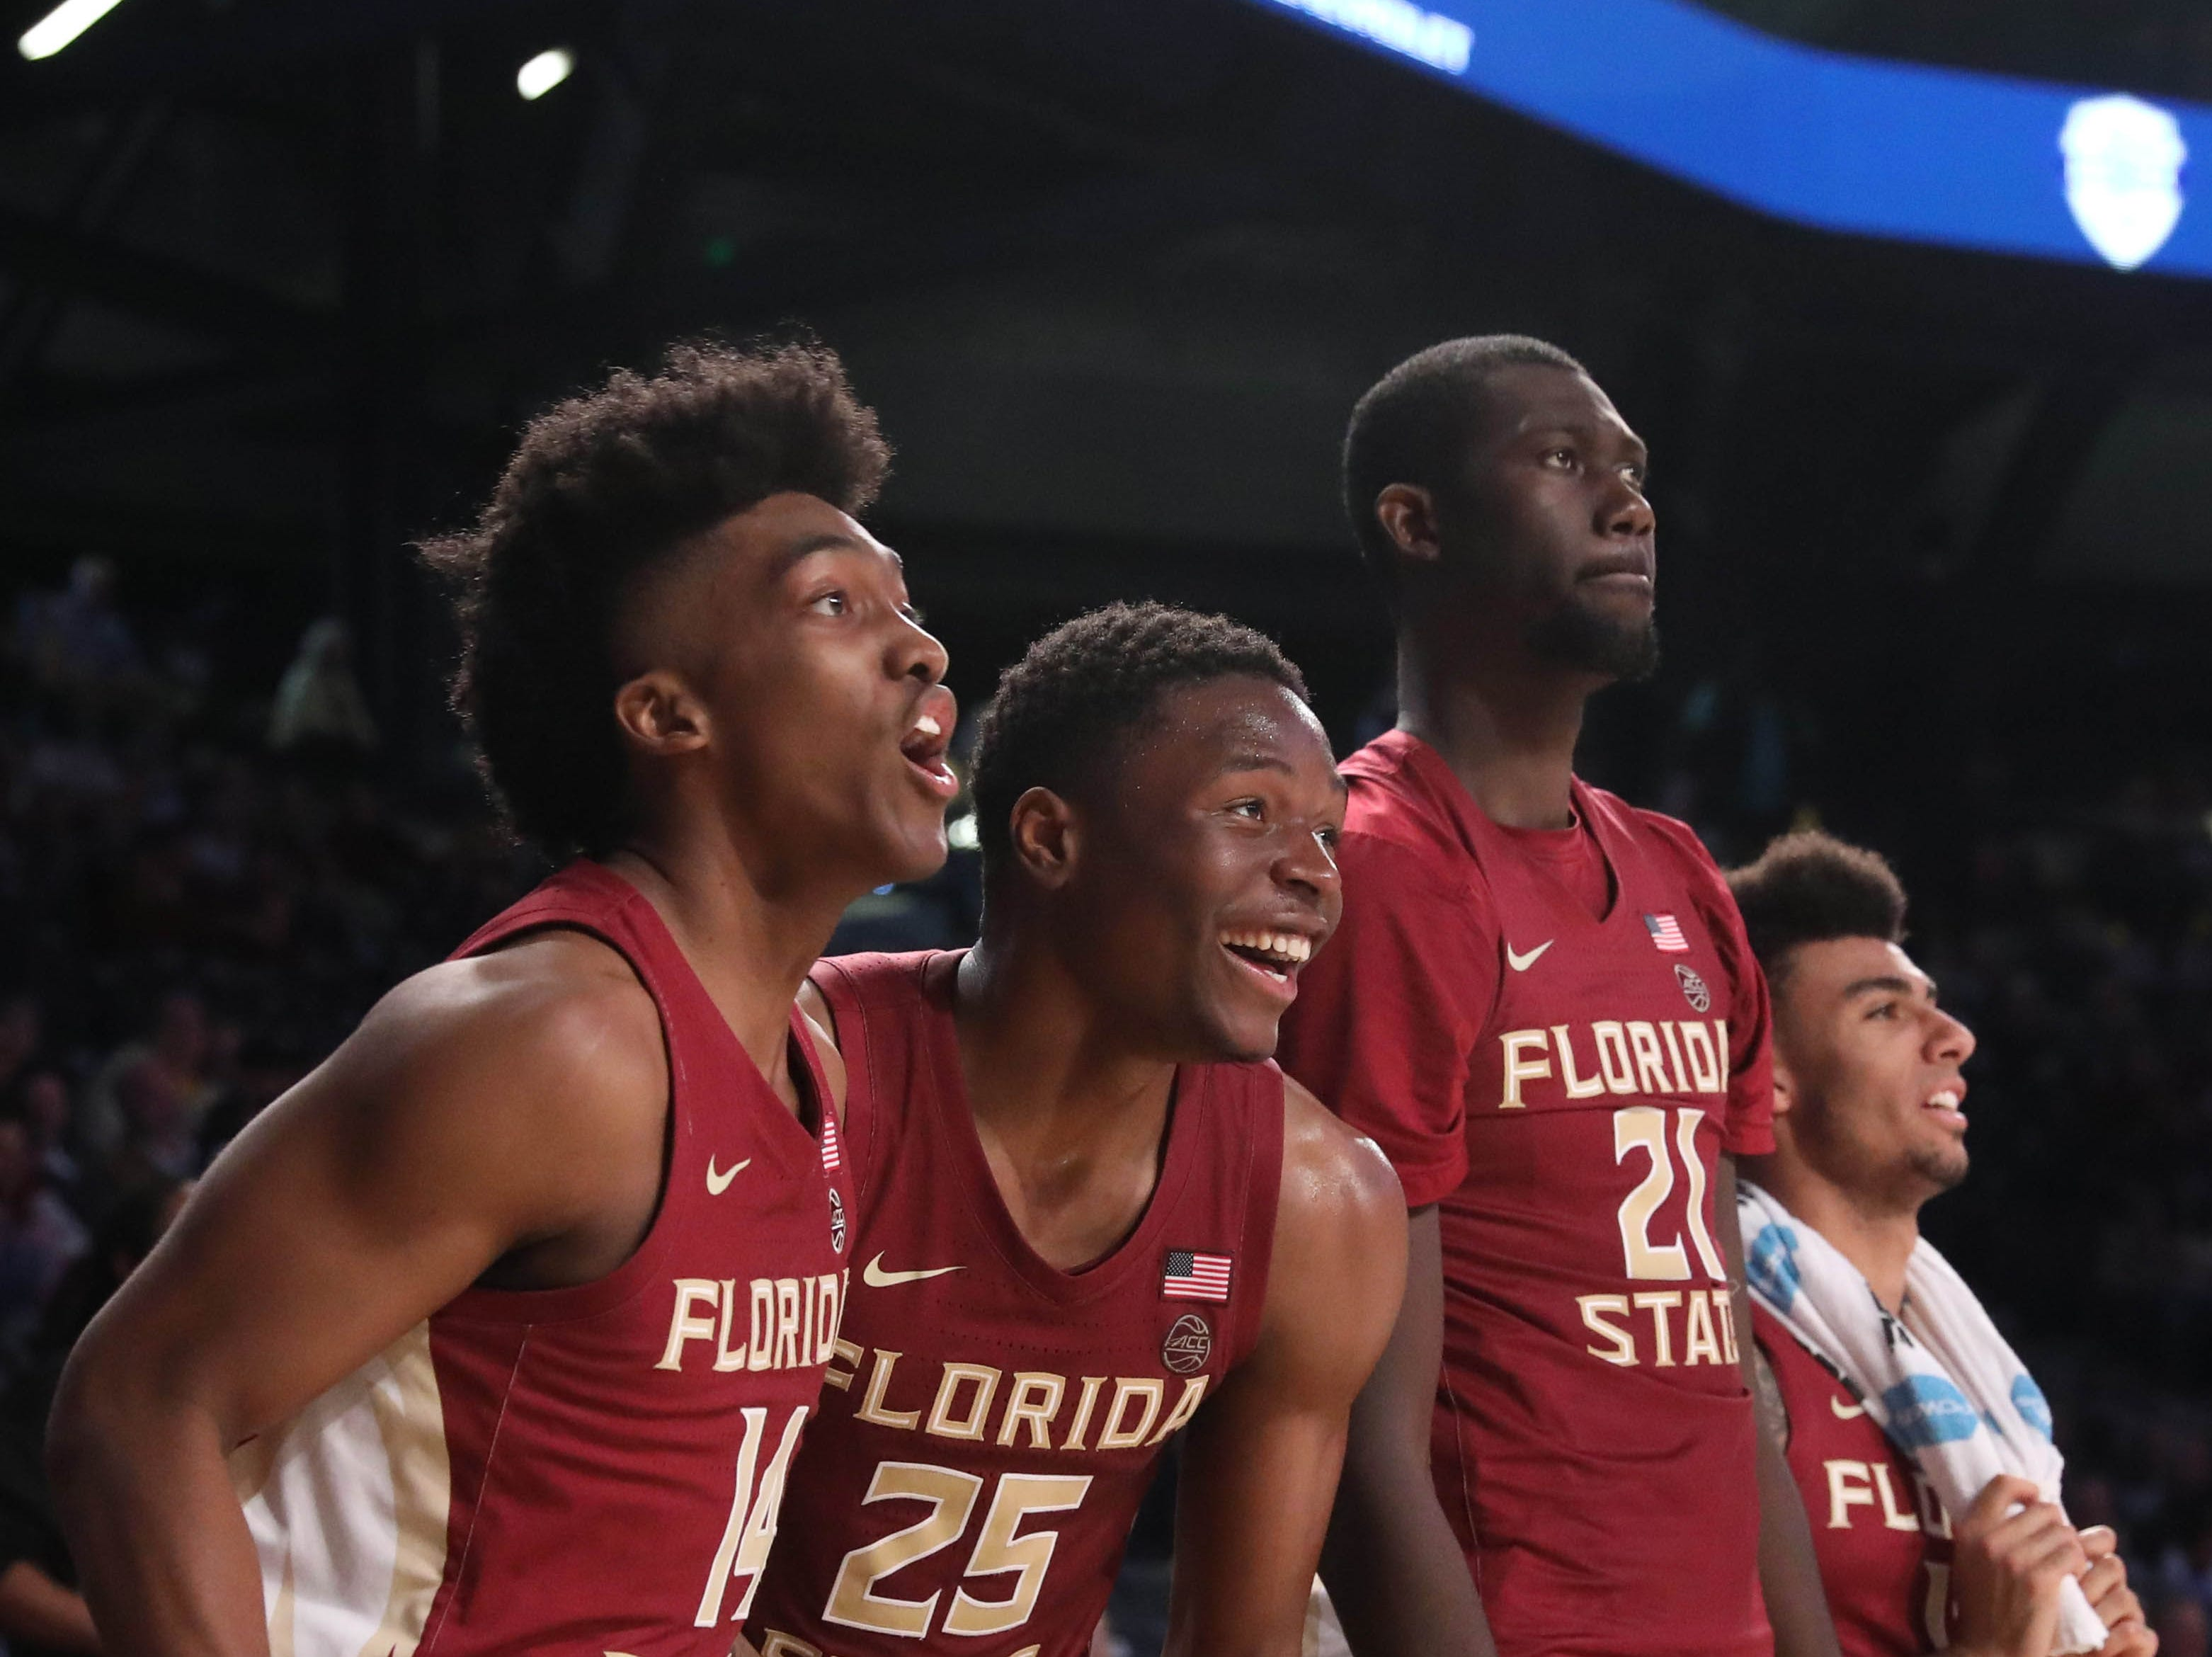 Feb 16, 2019; Atlanta, GA, USA; Florida State Seminoles guard Terance Mann (14), forward Mfiondu Kabengele (25), and center Christ Koumadje (21) celebrate on the bench in the second half against the Georgia Tech Yellow Jackets at McCamish Pavilion. Mandatory Credit: Jason Getz-USA TODAY Sports